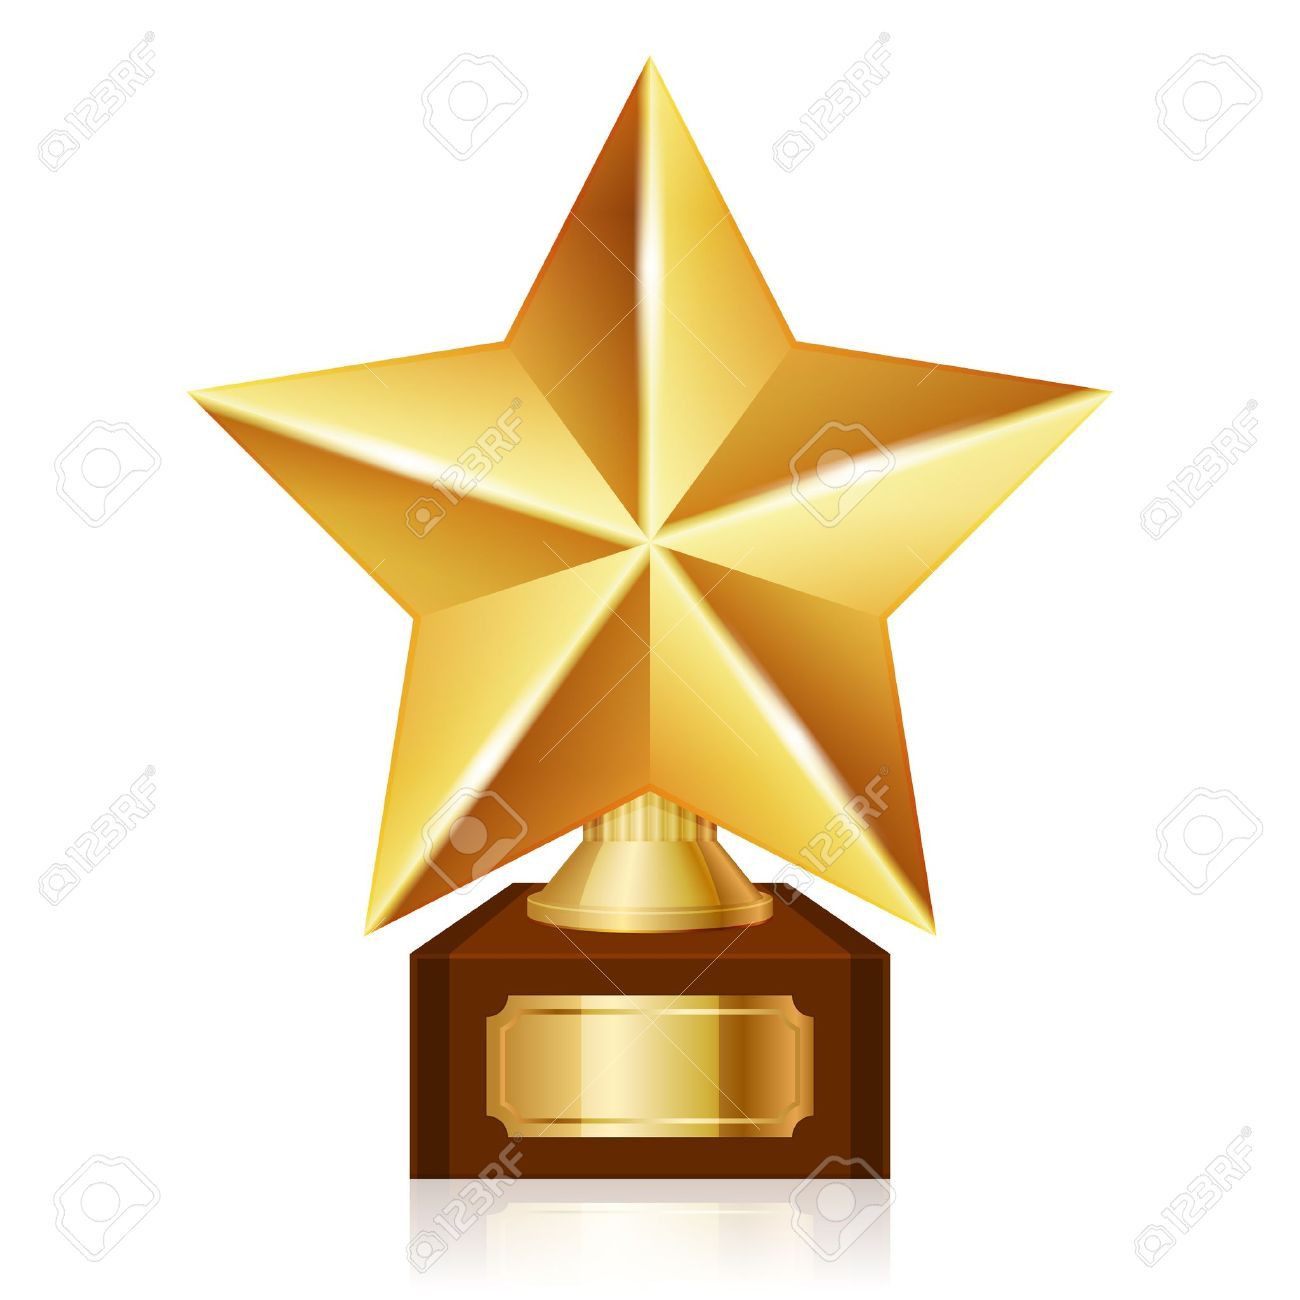 Gold star trophy clipart views 800 downloads 547 file type alramifo Image collections